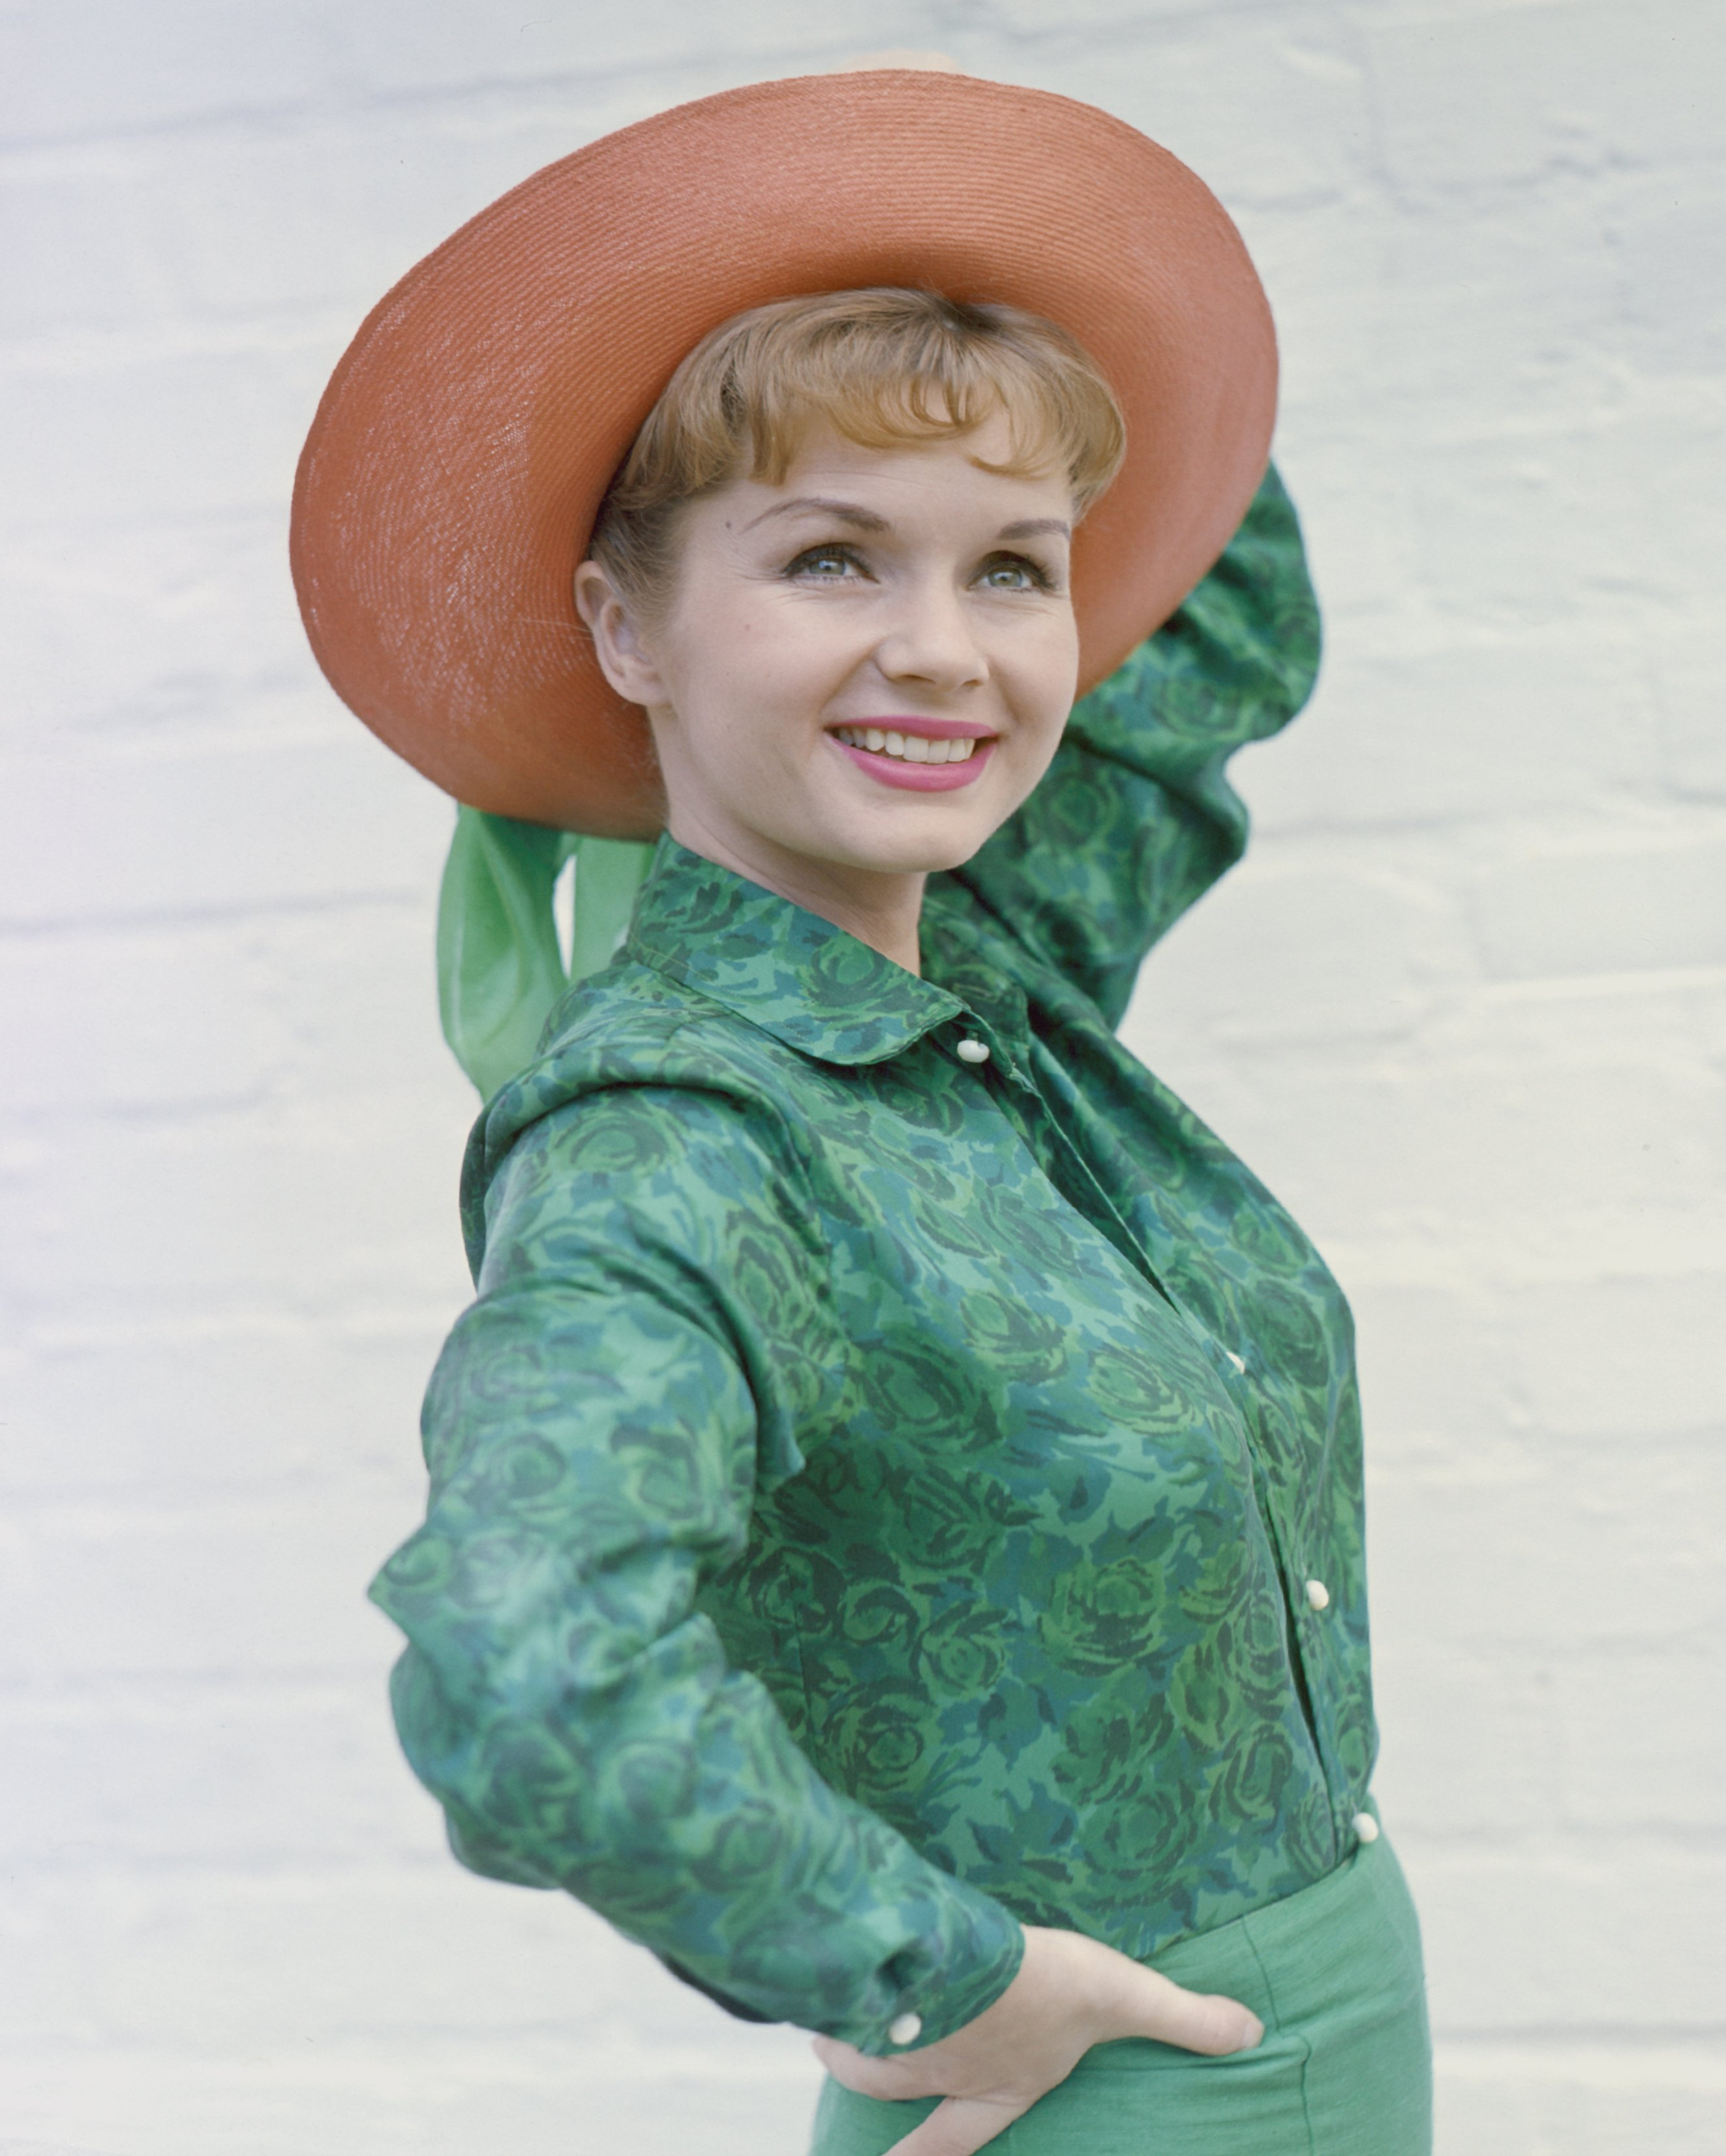 Image Source: Getty Images/Photo of Debbie Reynolds